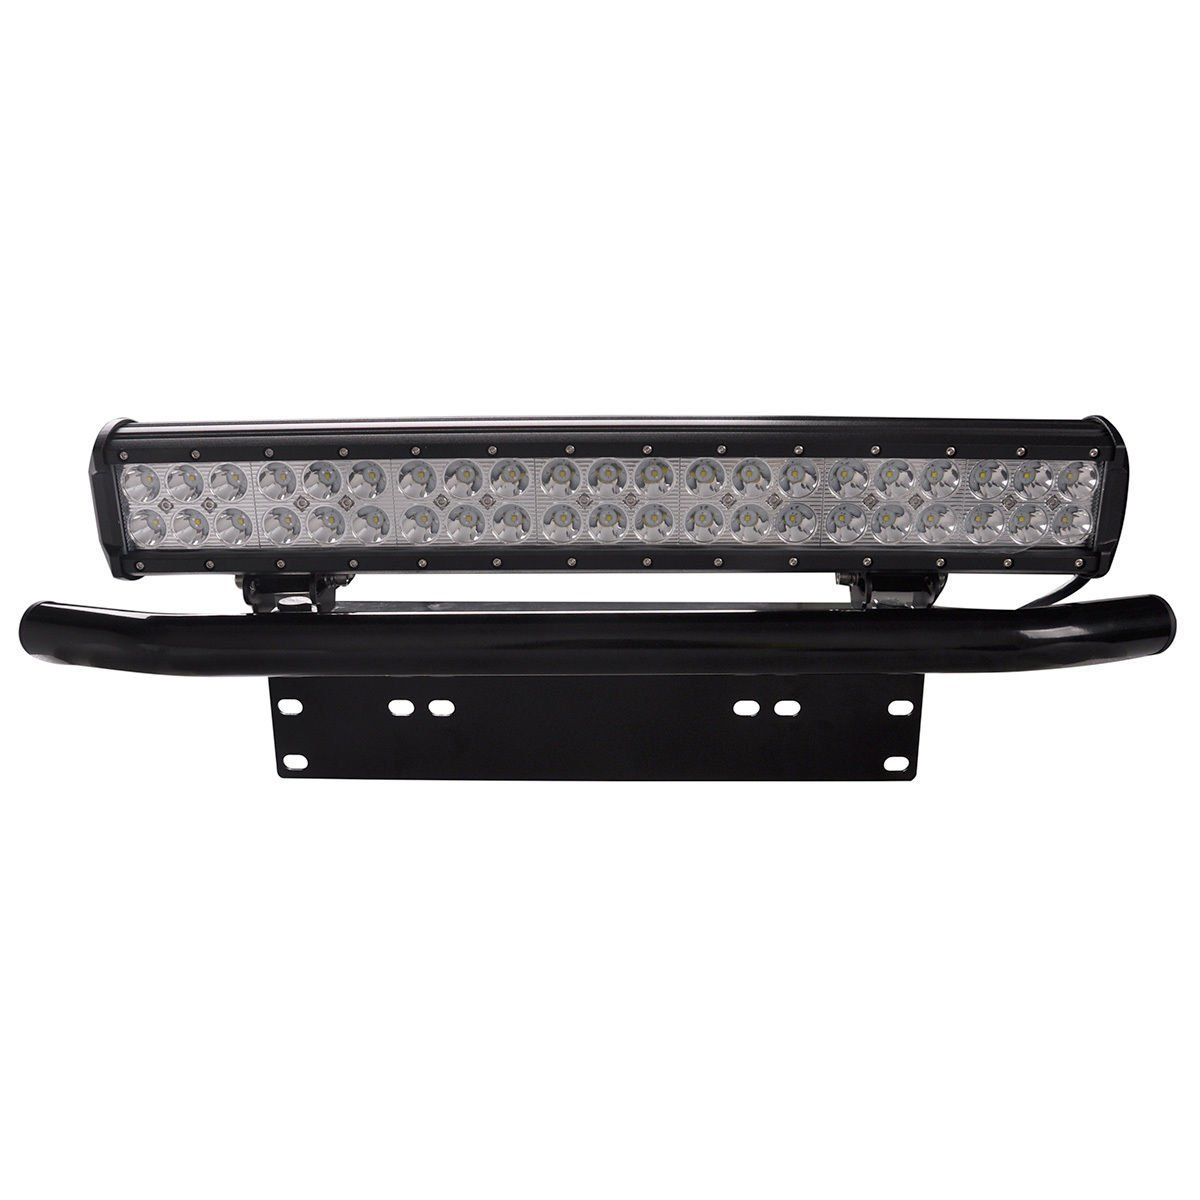 Northpole Light Universal License Plate Mounting Bracket with Front Bull Bar Bumper Frame for Off Road Jeep LED Work Light Bar